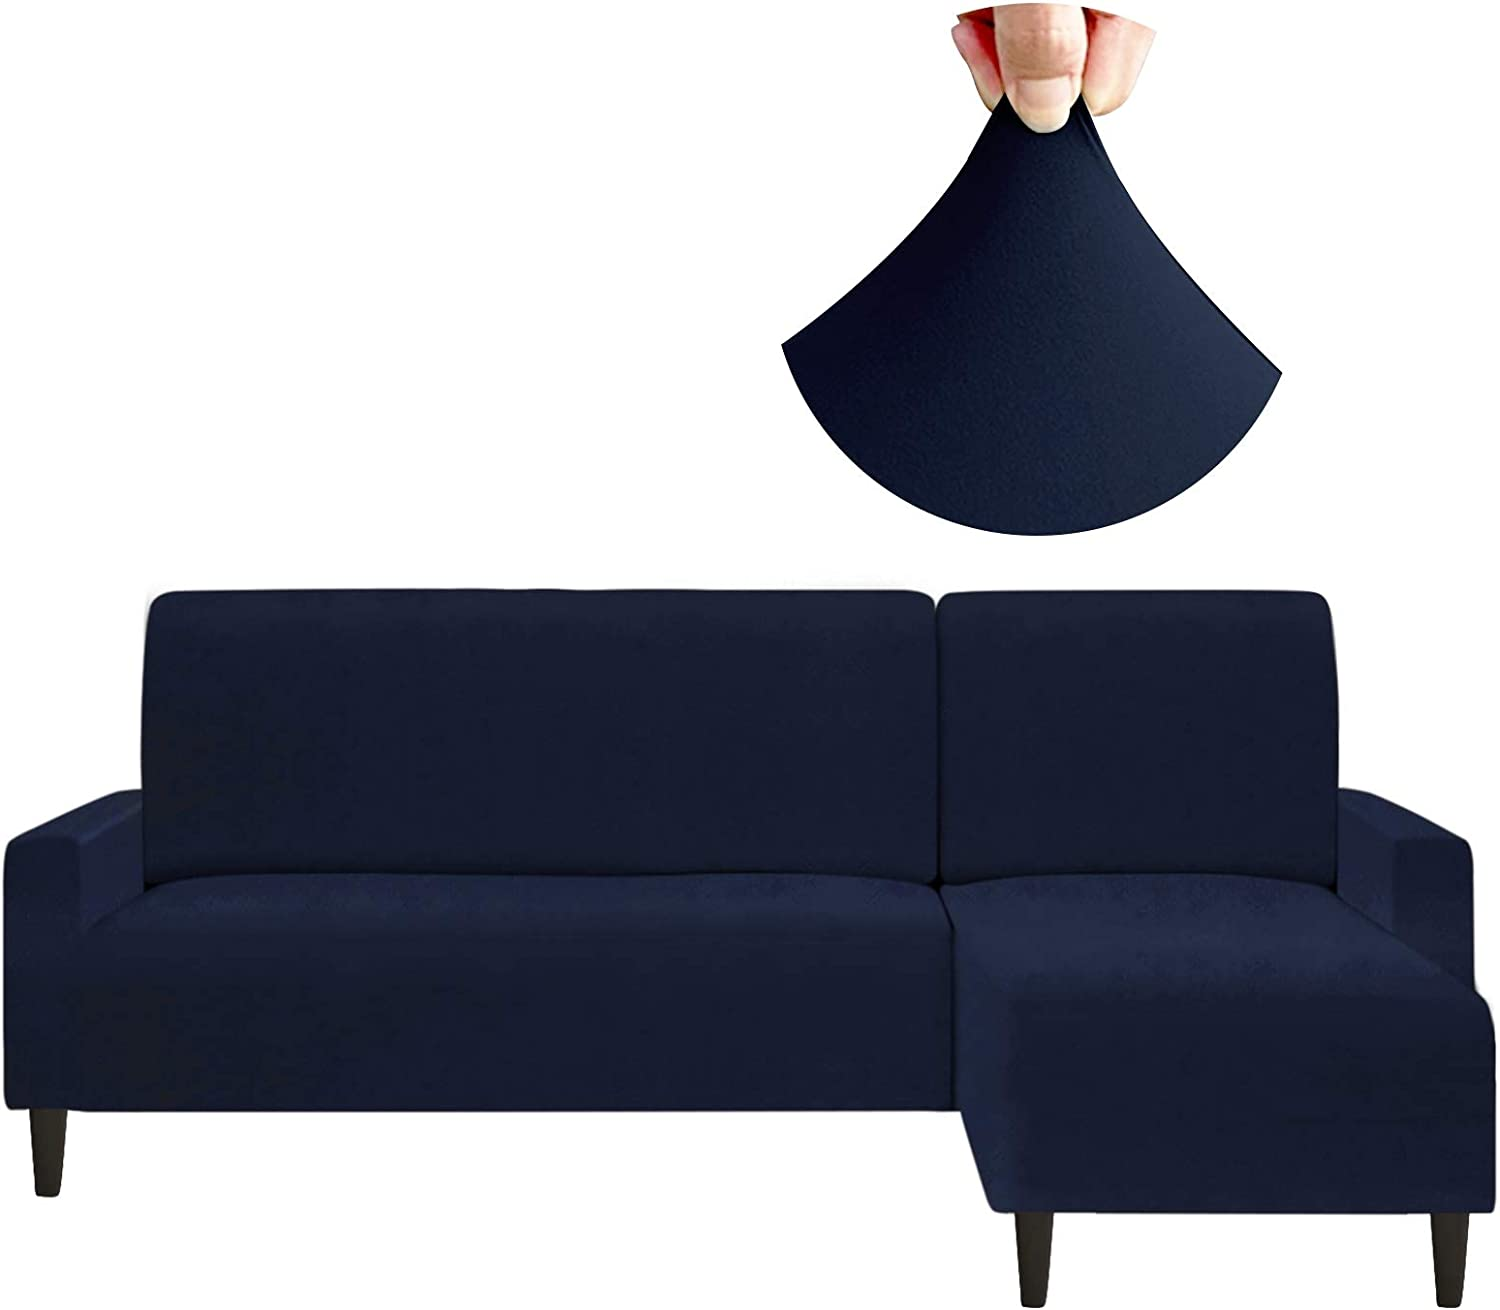 Arfntevss Stretch Sectional Couch Covers Water Resistant 2 Pieces L Shaped Sofa Cover Set Extra Soft Thick L-shape Slipcovers for Living Room Dogs Proof Non Slip Furniture Protector (Navy Blue, Large)